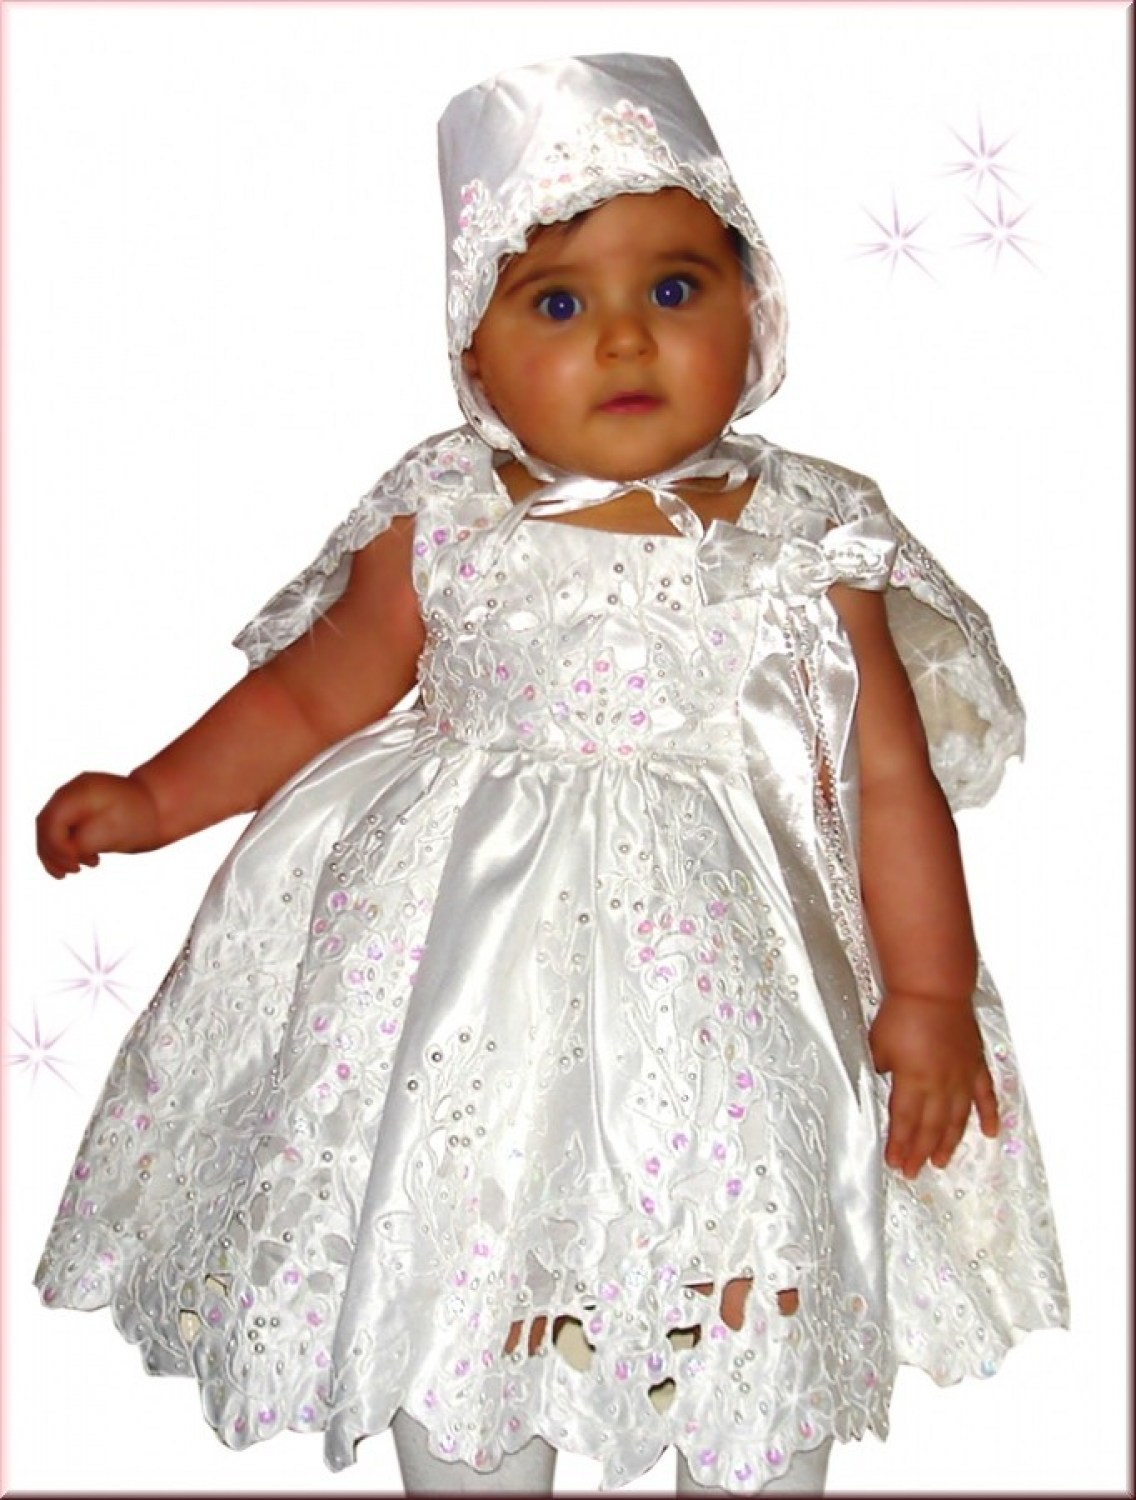 0f32dae95 Christening Gown-Baby Dress, Lace fabric, includes cape